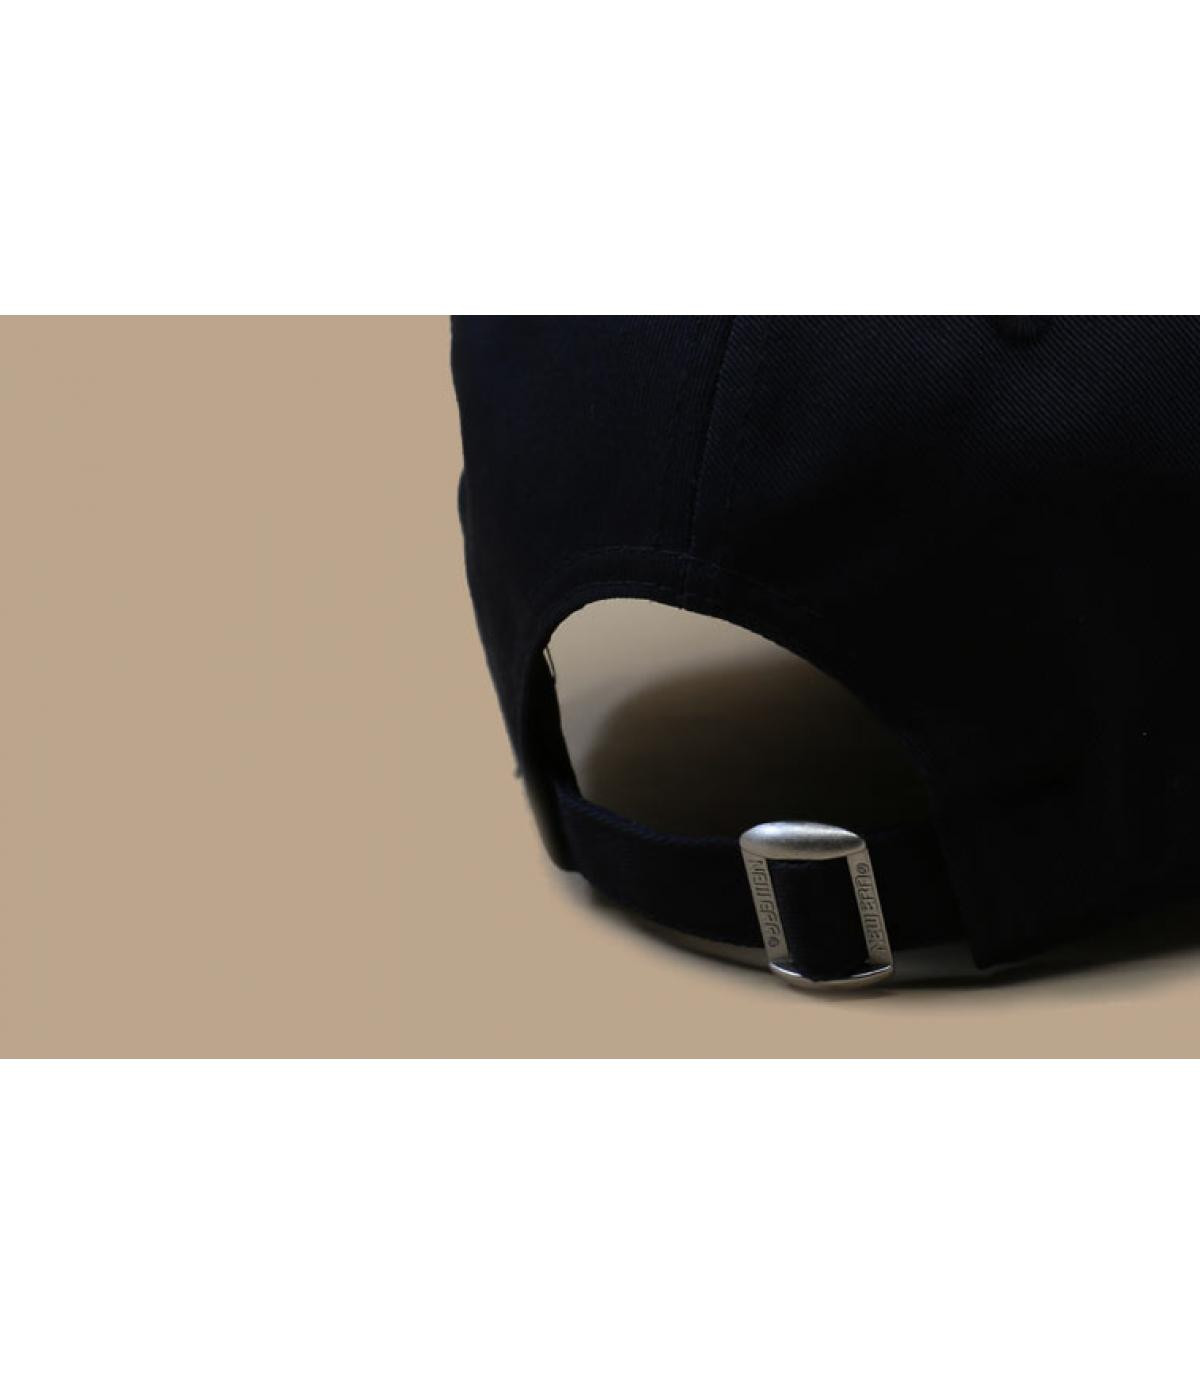 Détails Casquette Kids Infill 940 NY navy - image 5